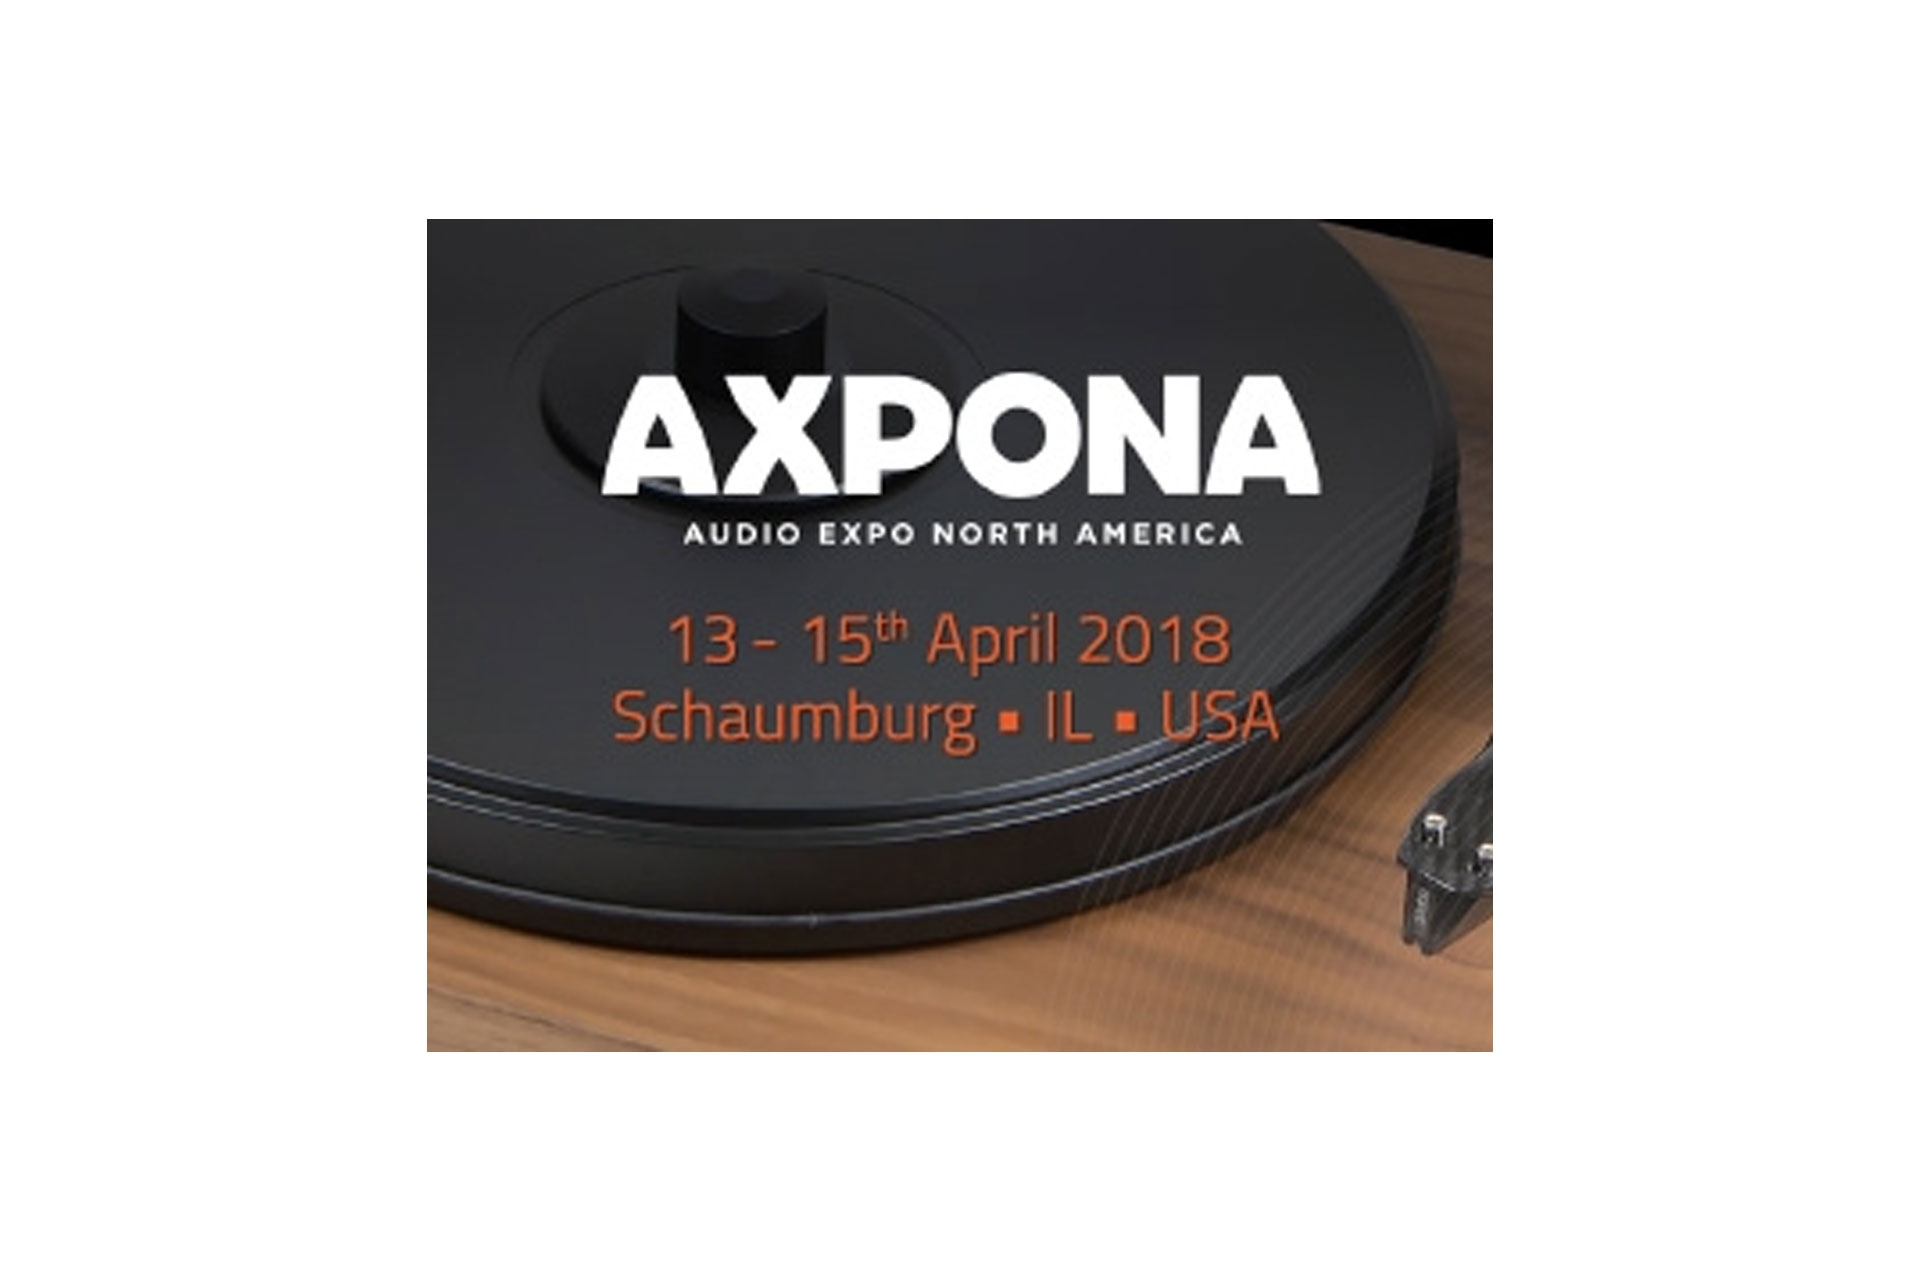 AXPONA Audio Expo North America